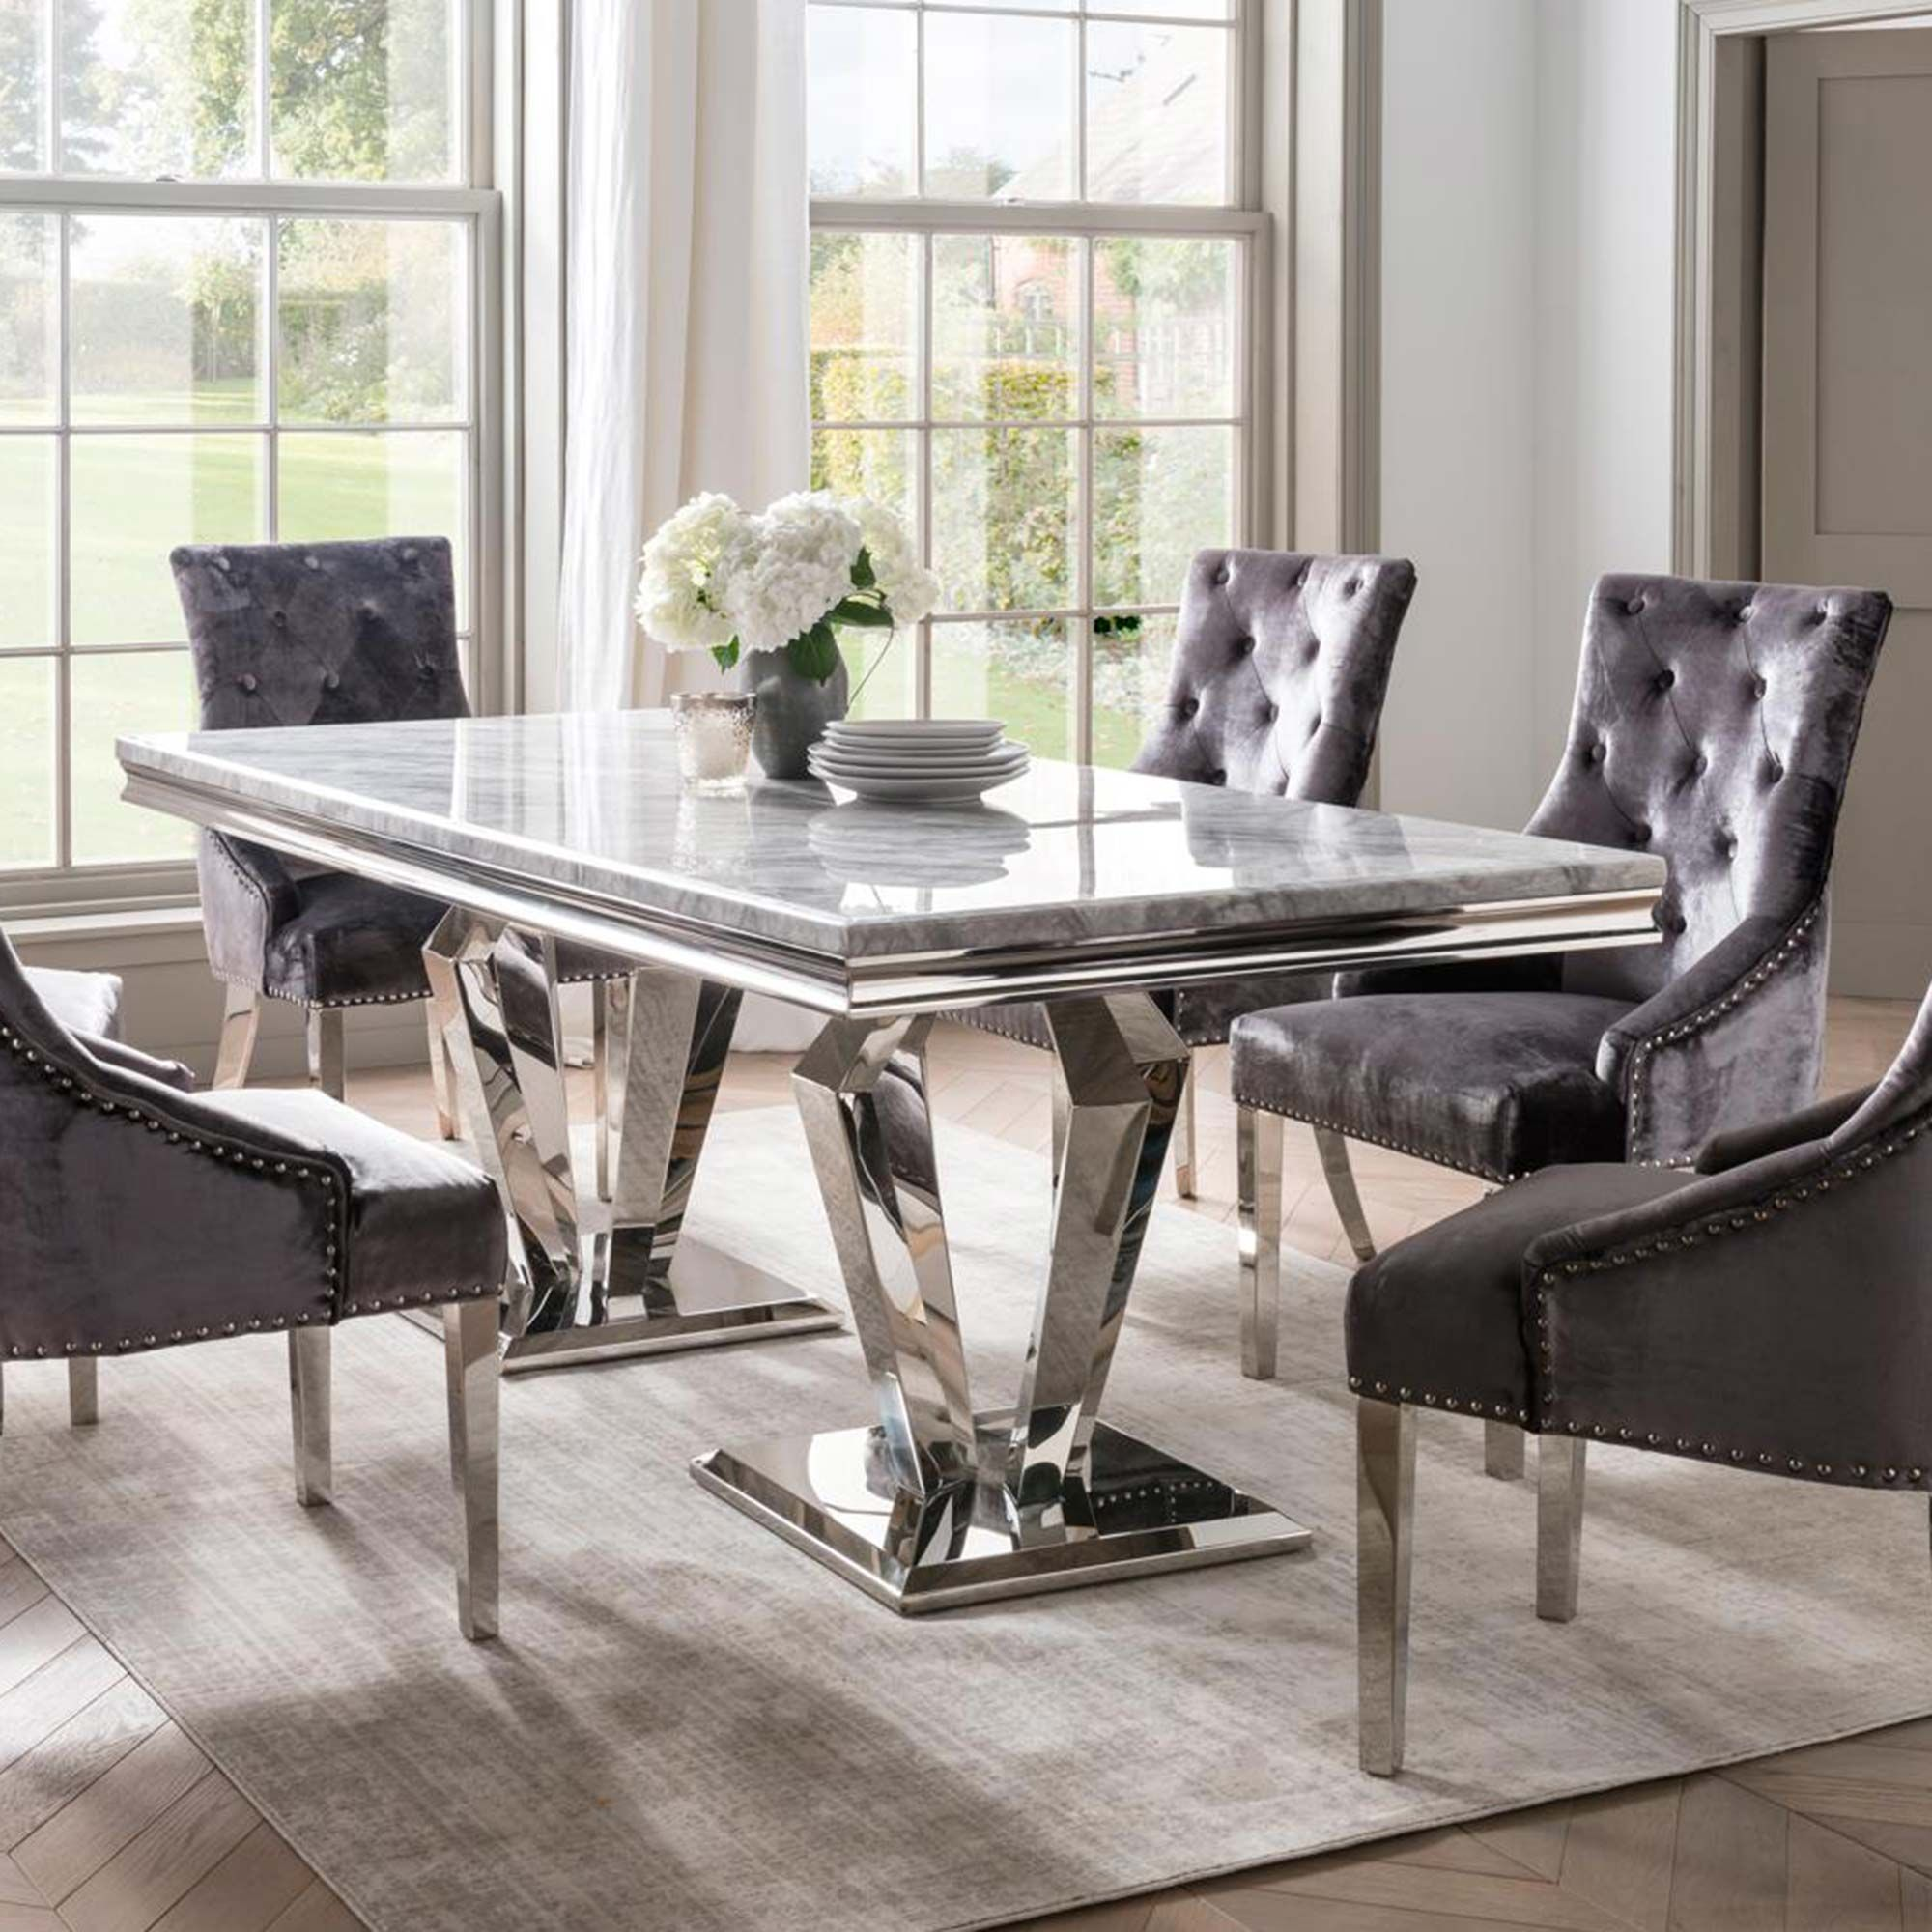 Ernest 6 Person Wide Dining Table Stainless Steel Marble Top Dining Tables Meubles